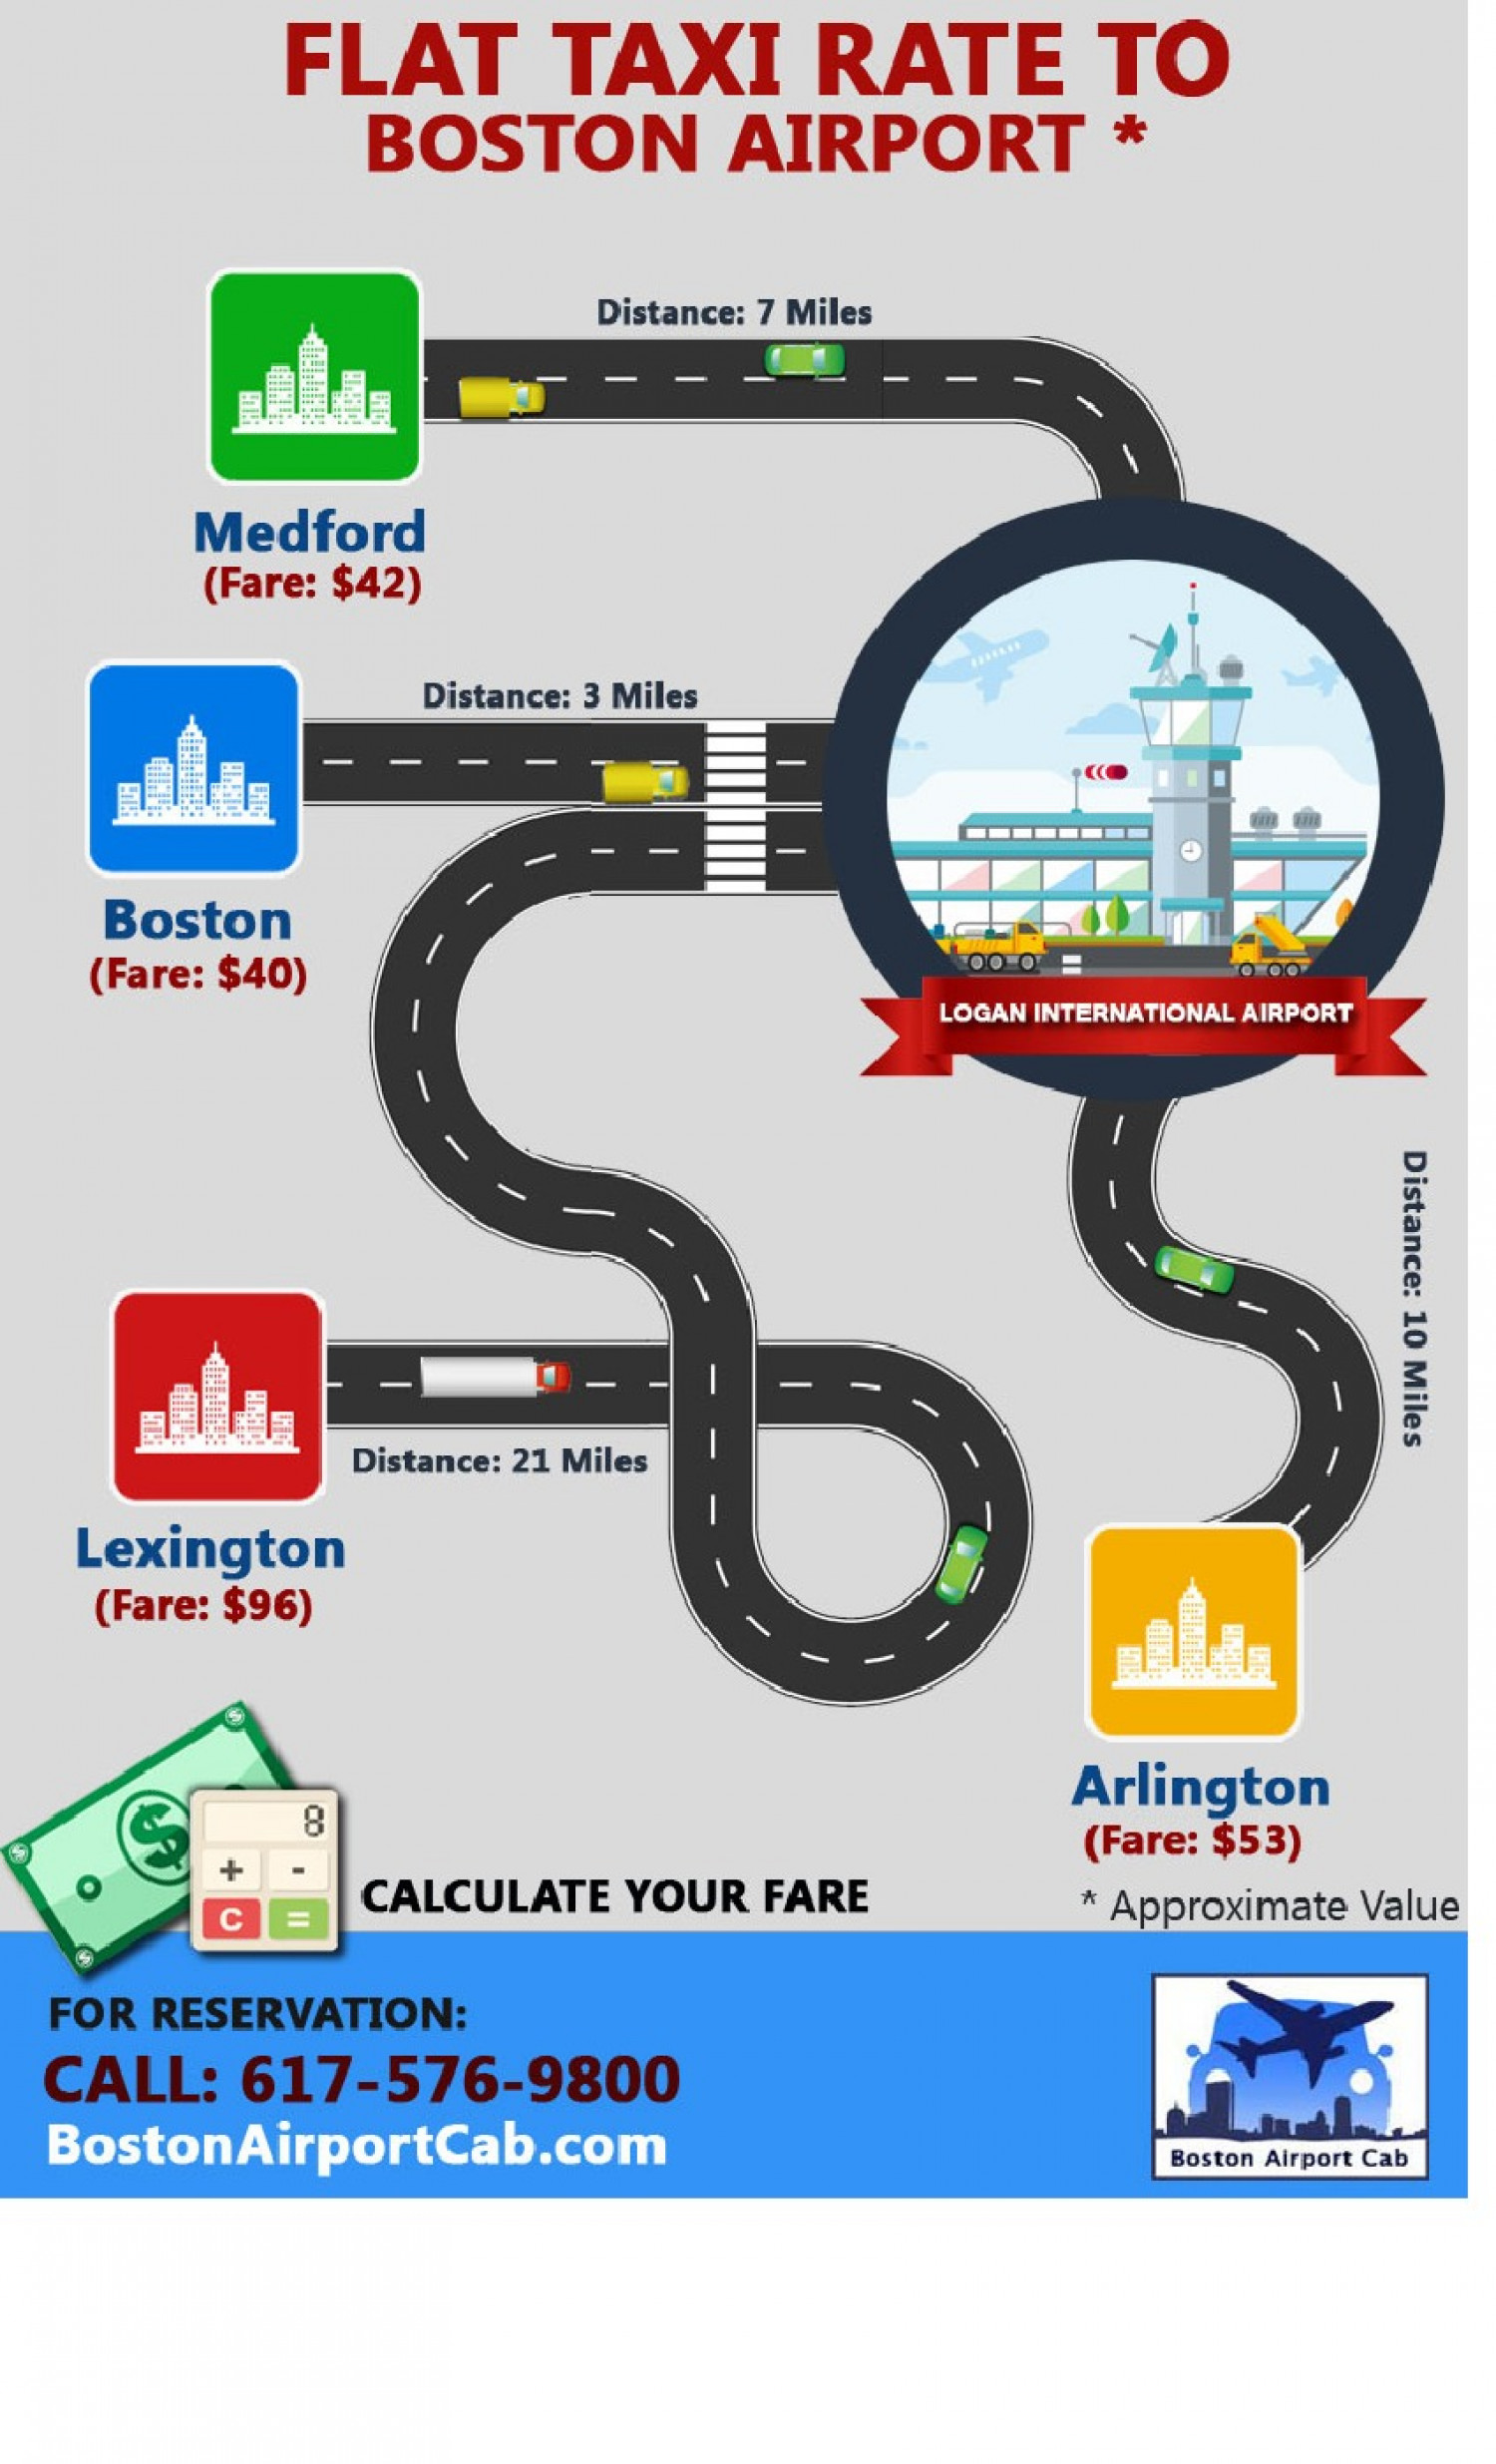 Boston Airport Flat Rate Taxi Infographic